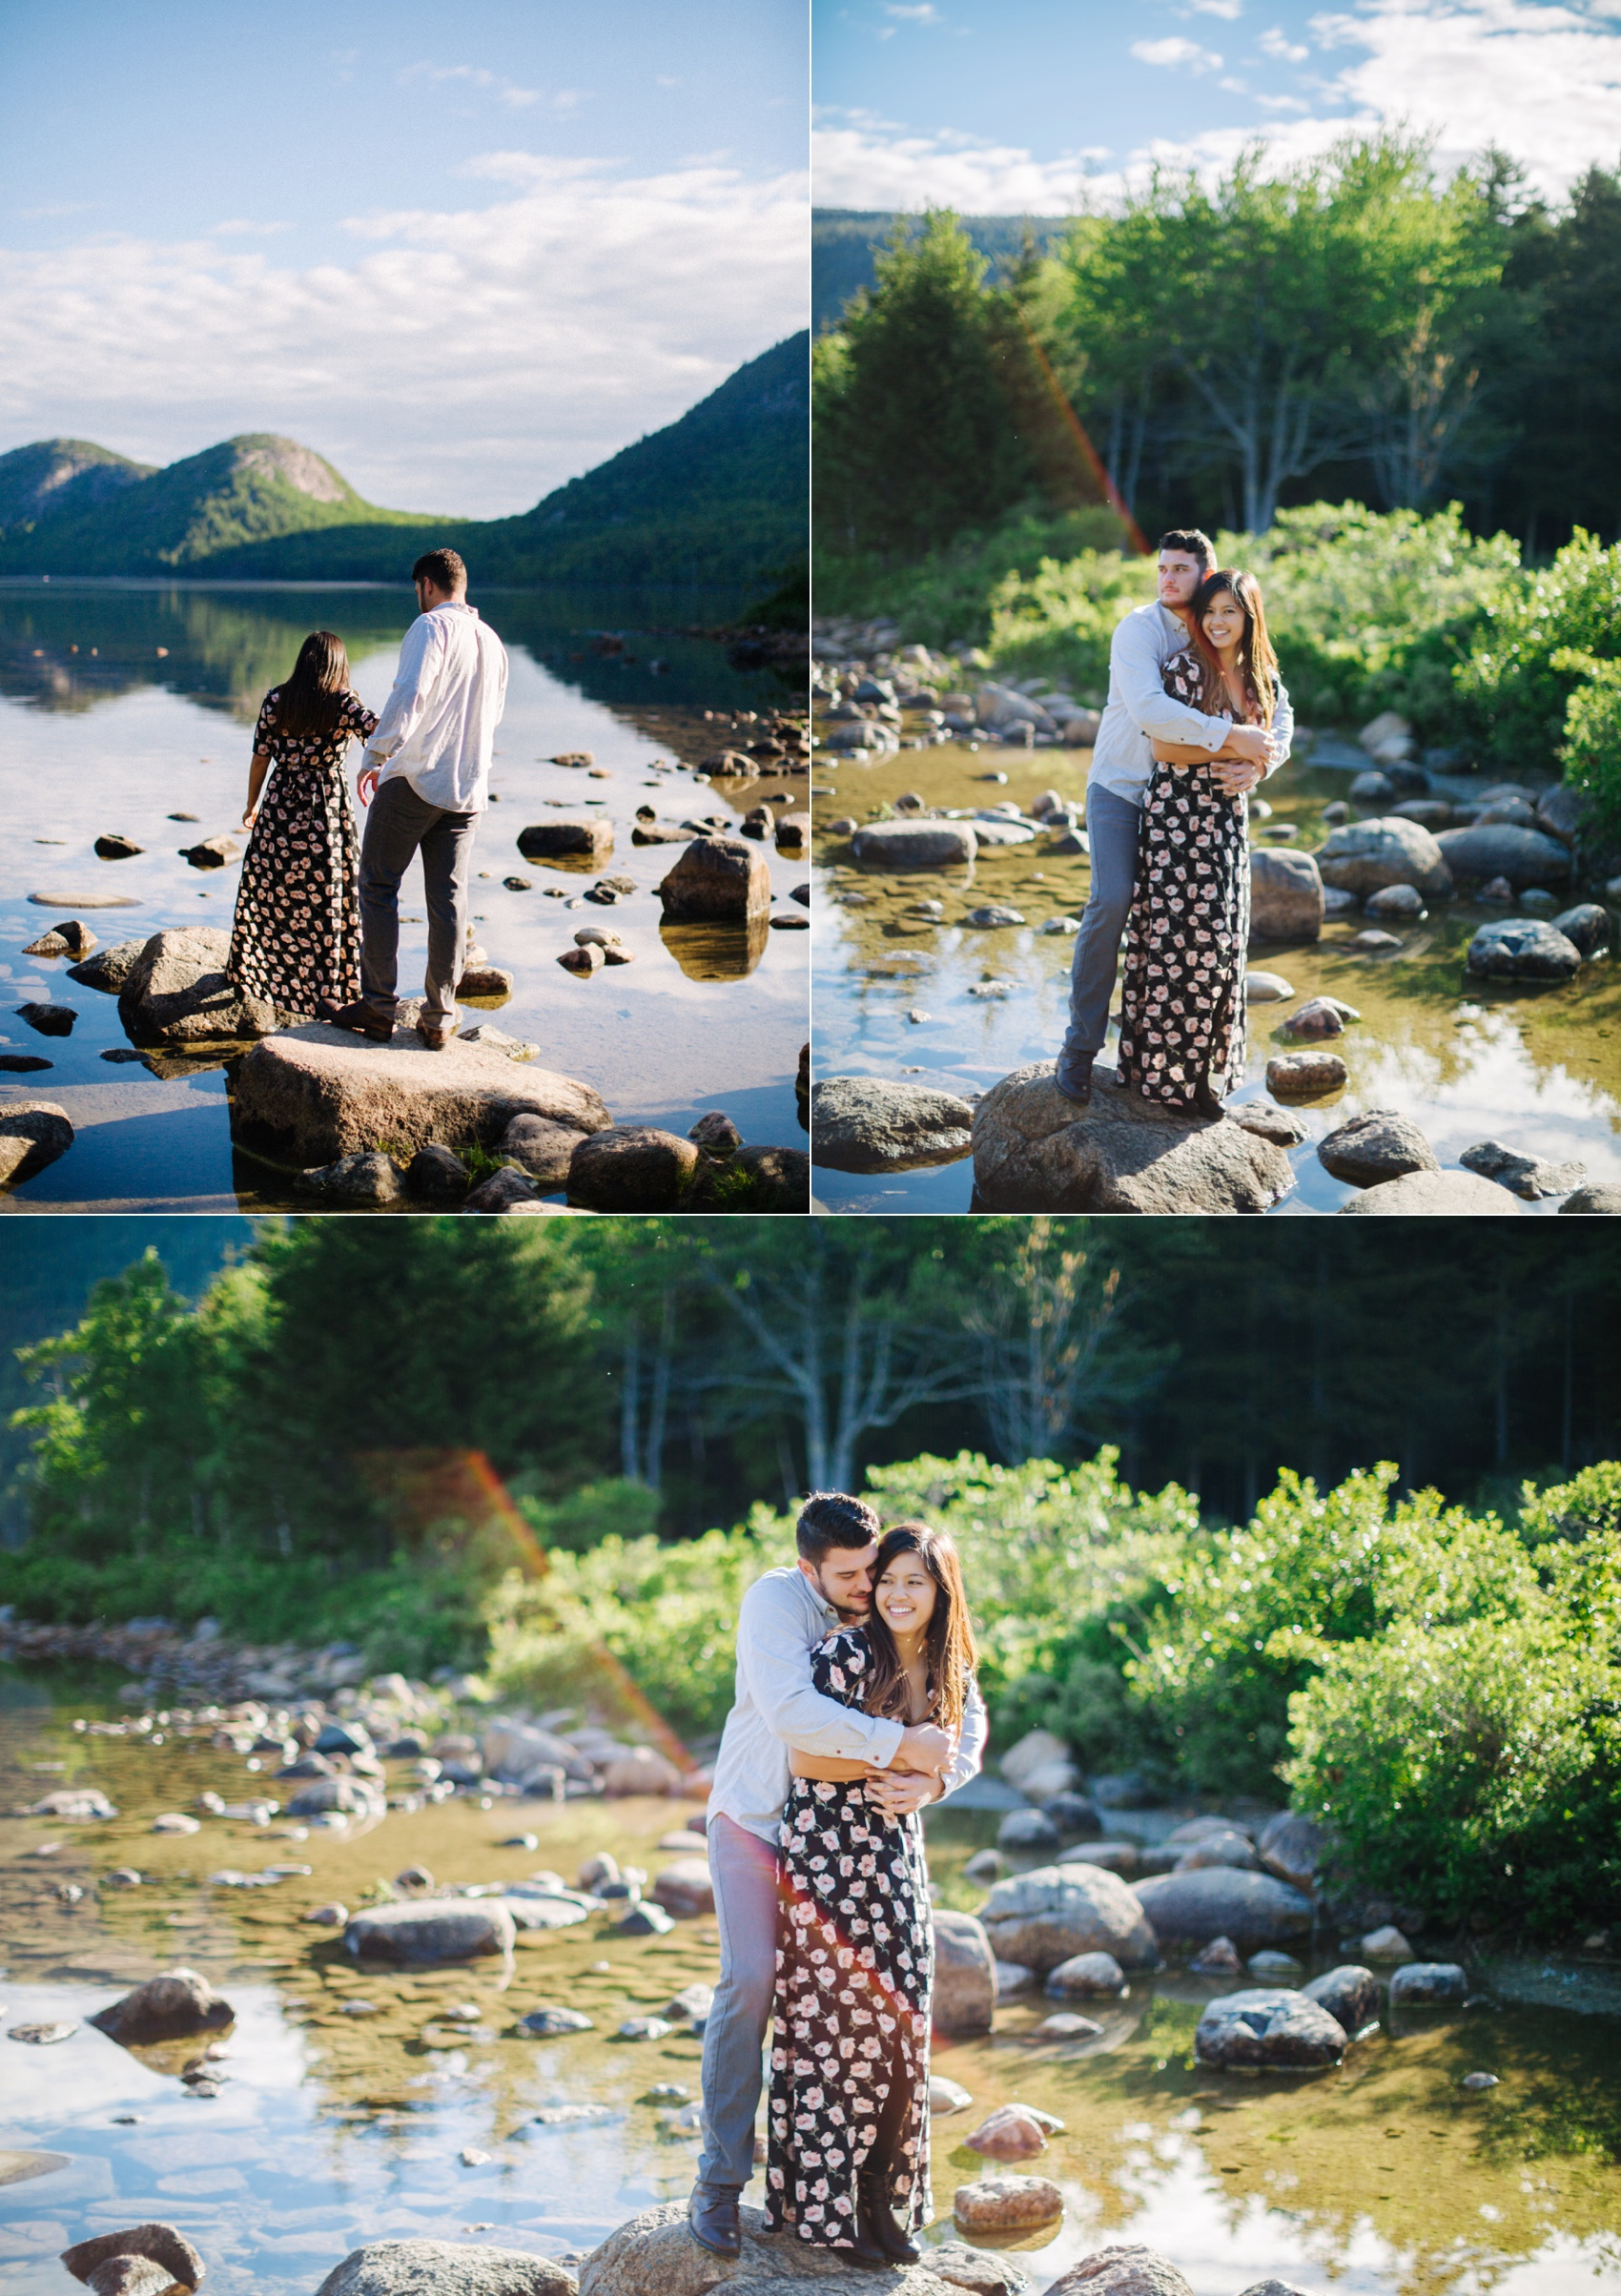 jake and jill acacdia national park engagement session cadillac mountain engagement session jordan pond engagement session maine engagement session jake and katie_0024